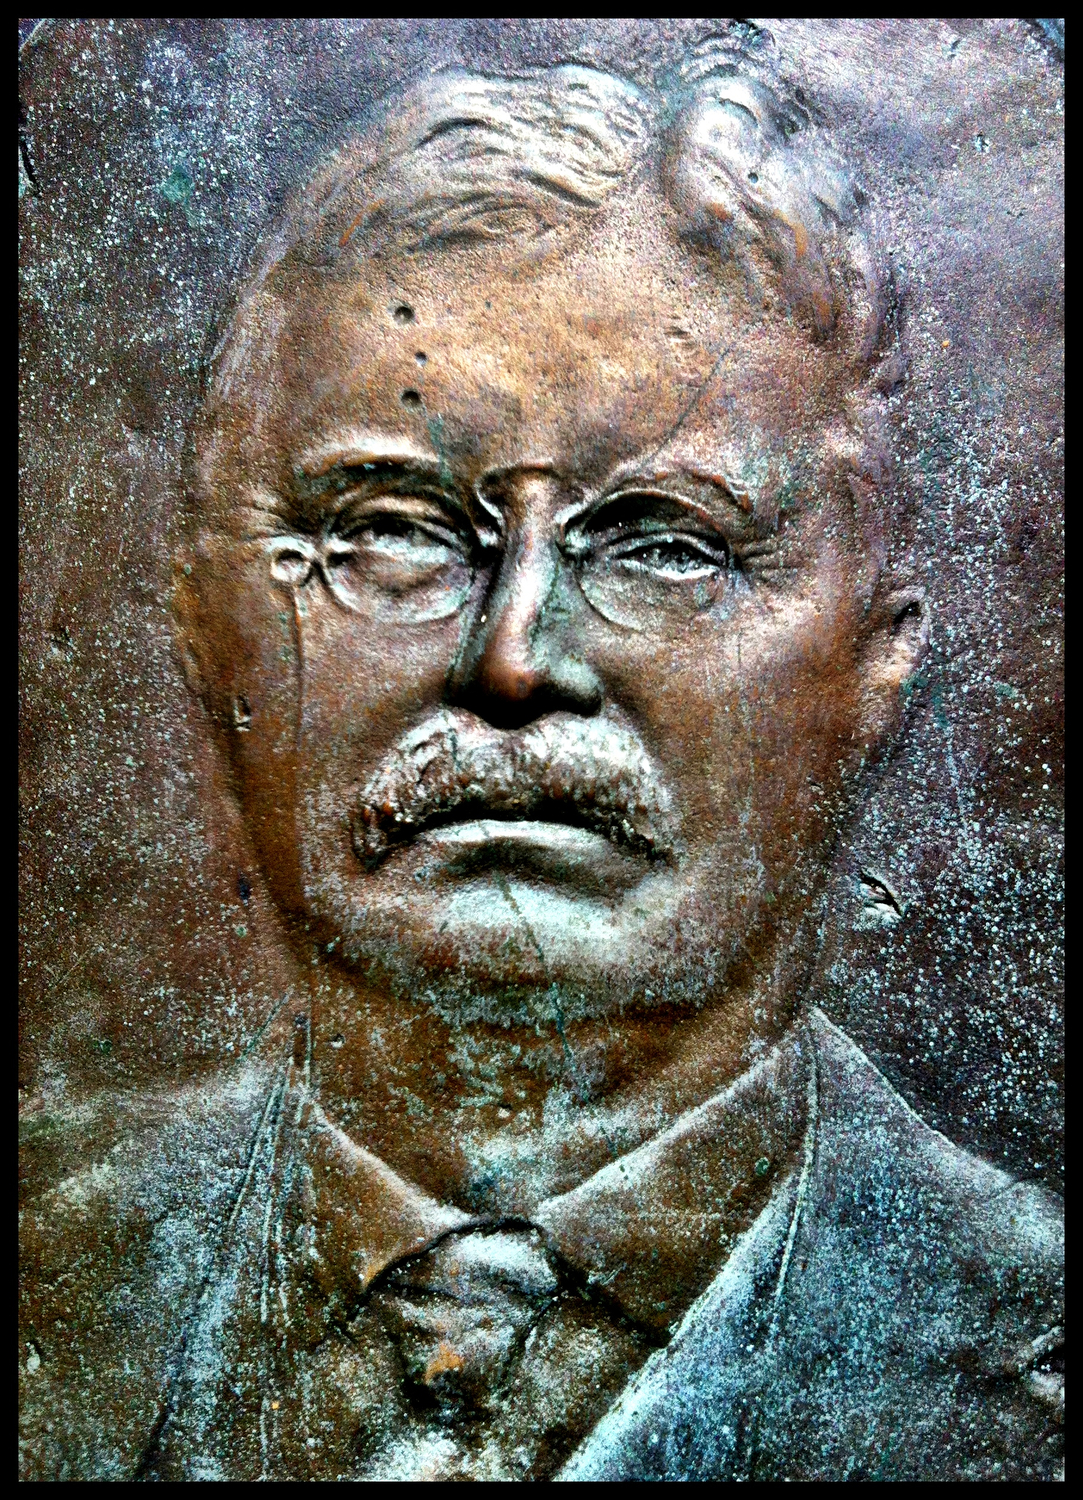 Theodore Roosevelt, detail from the Theodore Roosevelt Preserve Dedication Memorial, Shawnee State Park, Scioto County, Ohio (2012).